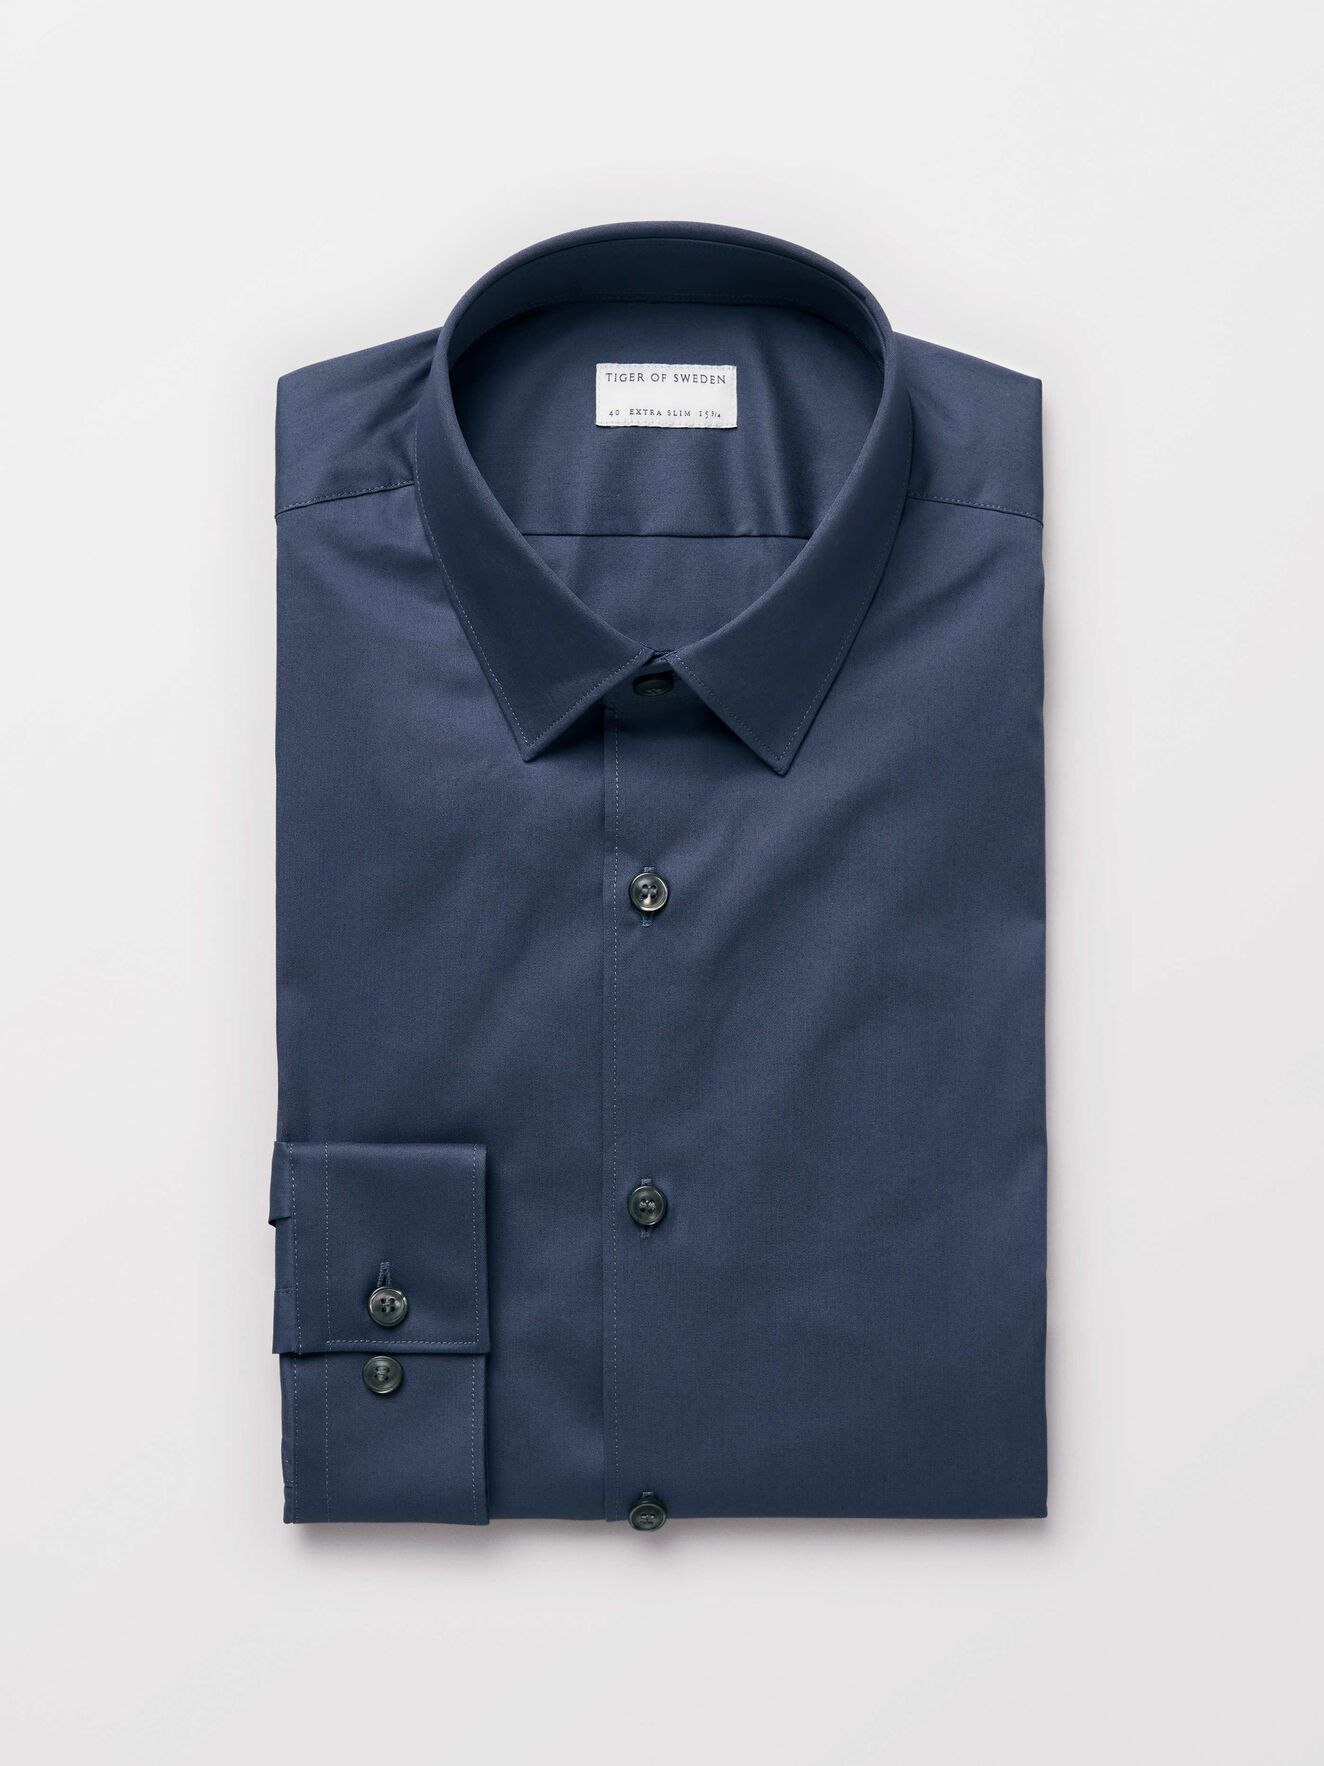 Filbrodie Shirt in Purple Blue from Tiger of Sweden